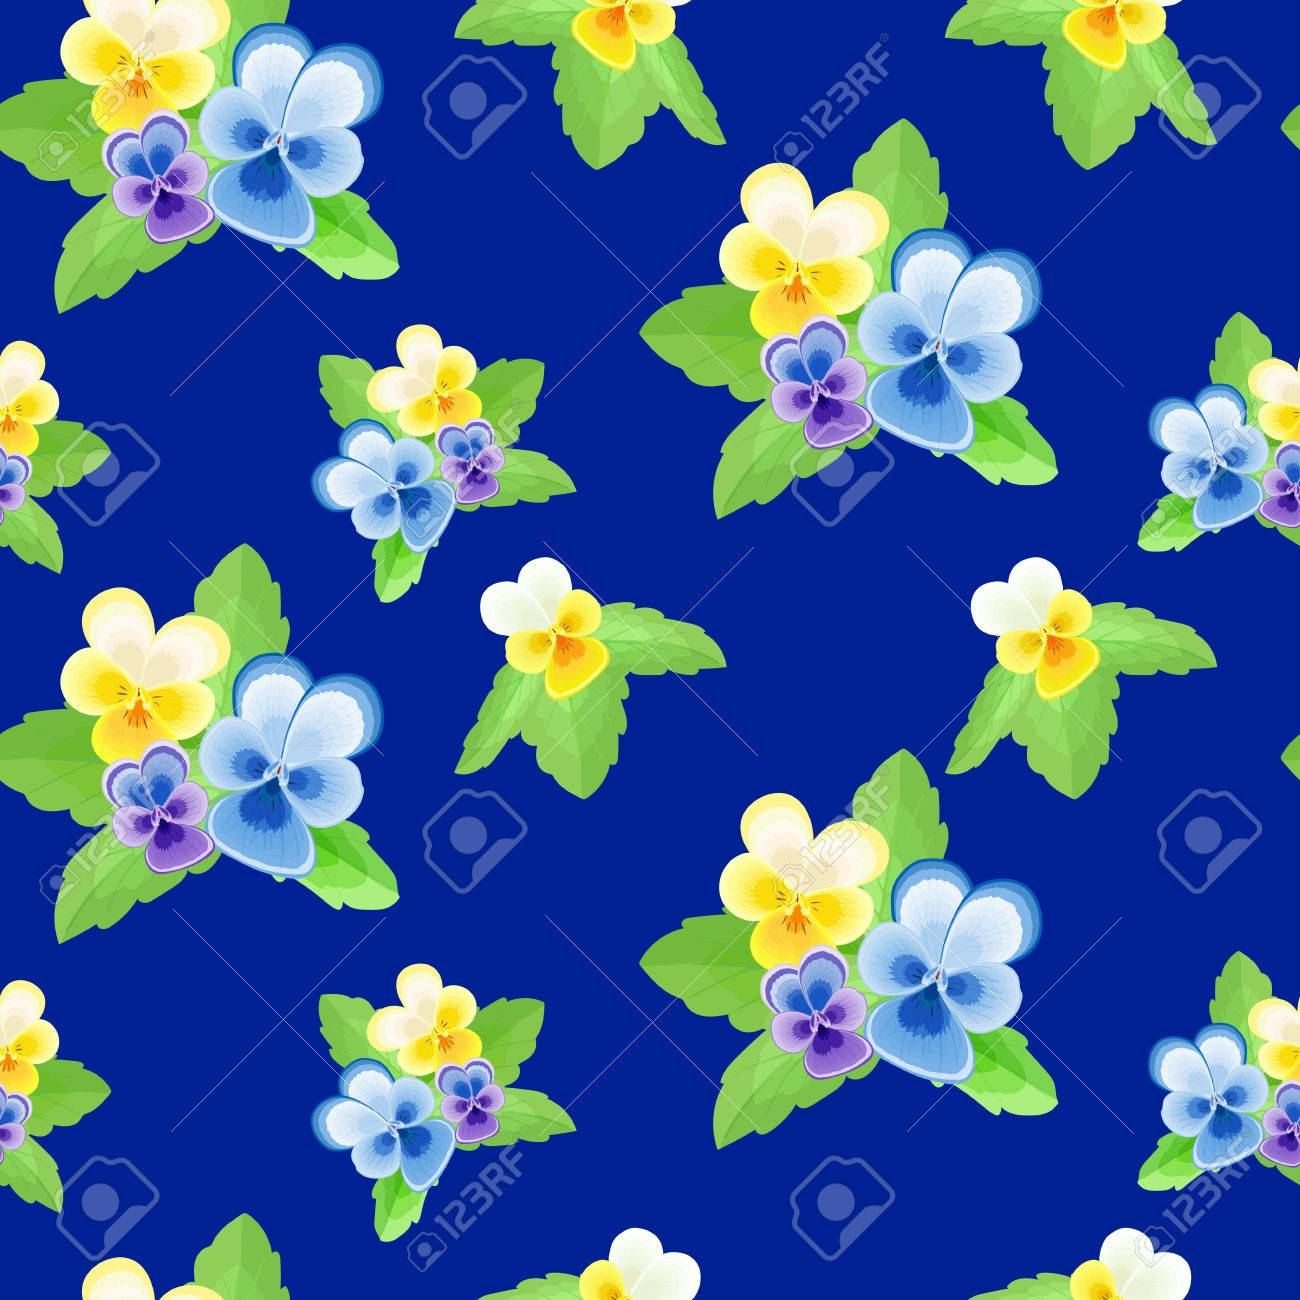 ec9c7fb79 Cute floral illustration.Summer seamless pattern with delicate yellow-white  flowers on a dark